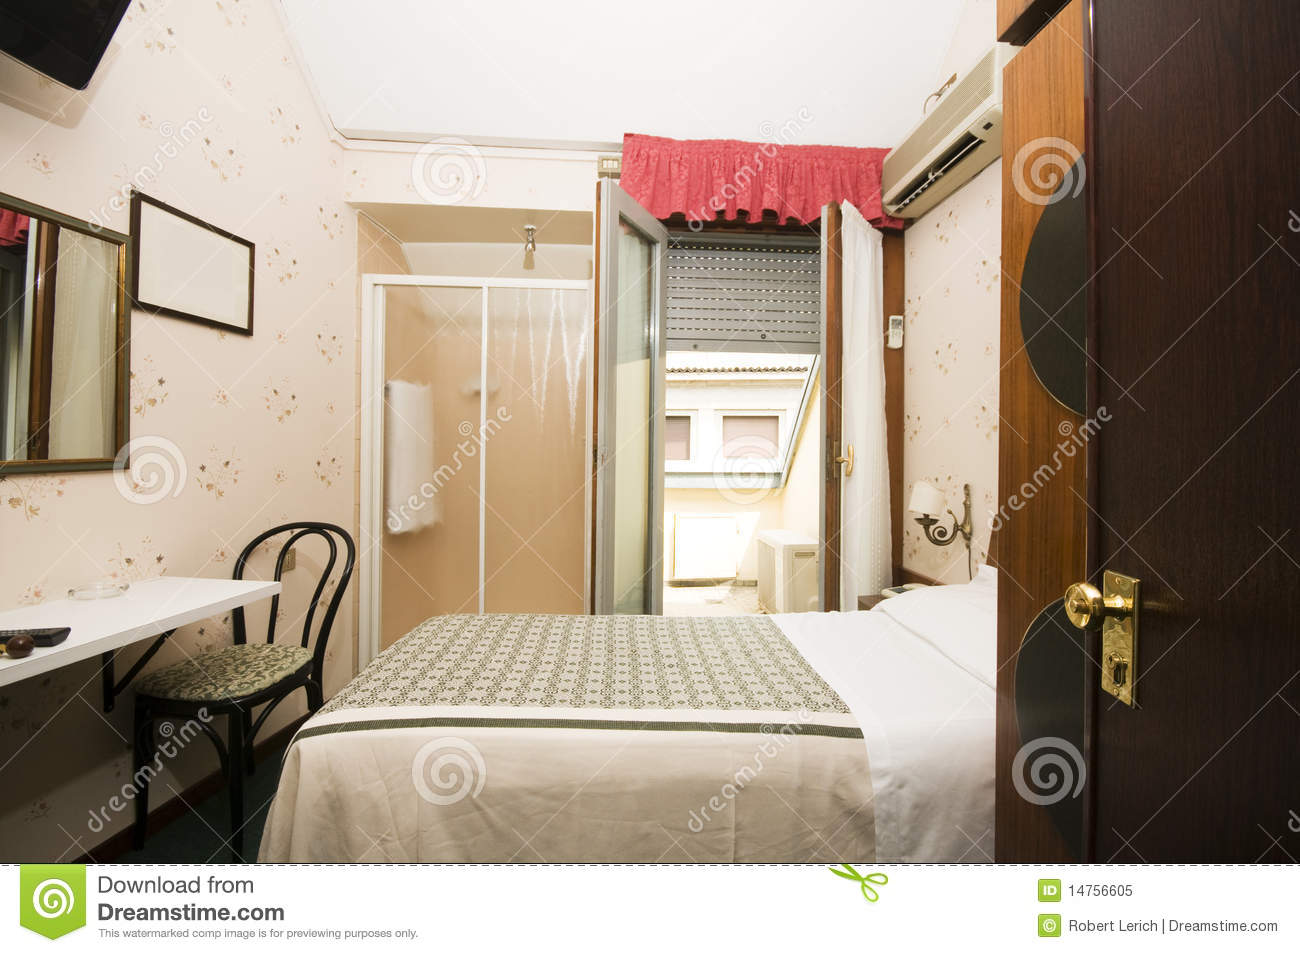 M Design Hotel Of Interior Small Hotel Room Milan Italy Stock Image Image